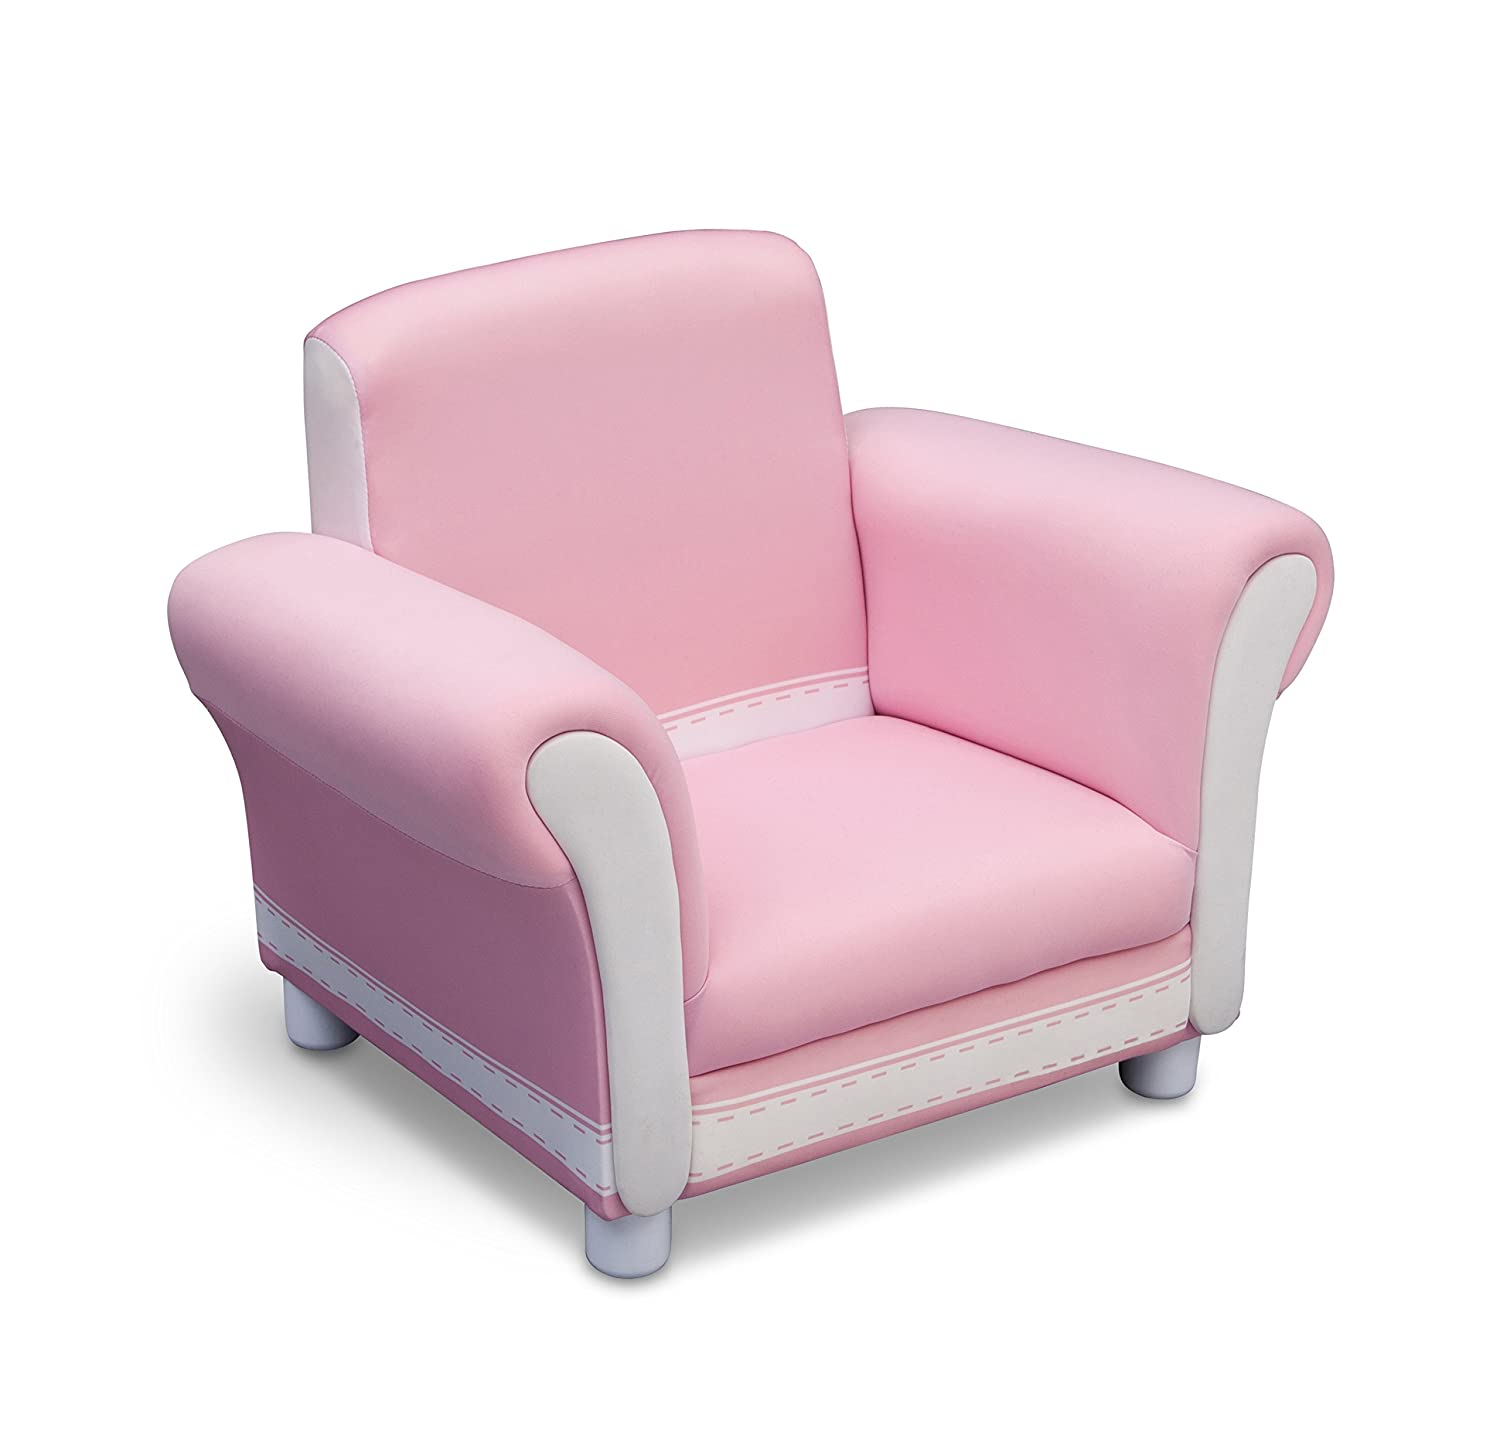 Delta Children Children's Upholstered Chair (Pink and White) UP85853GN